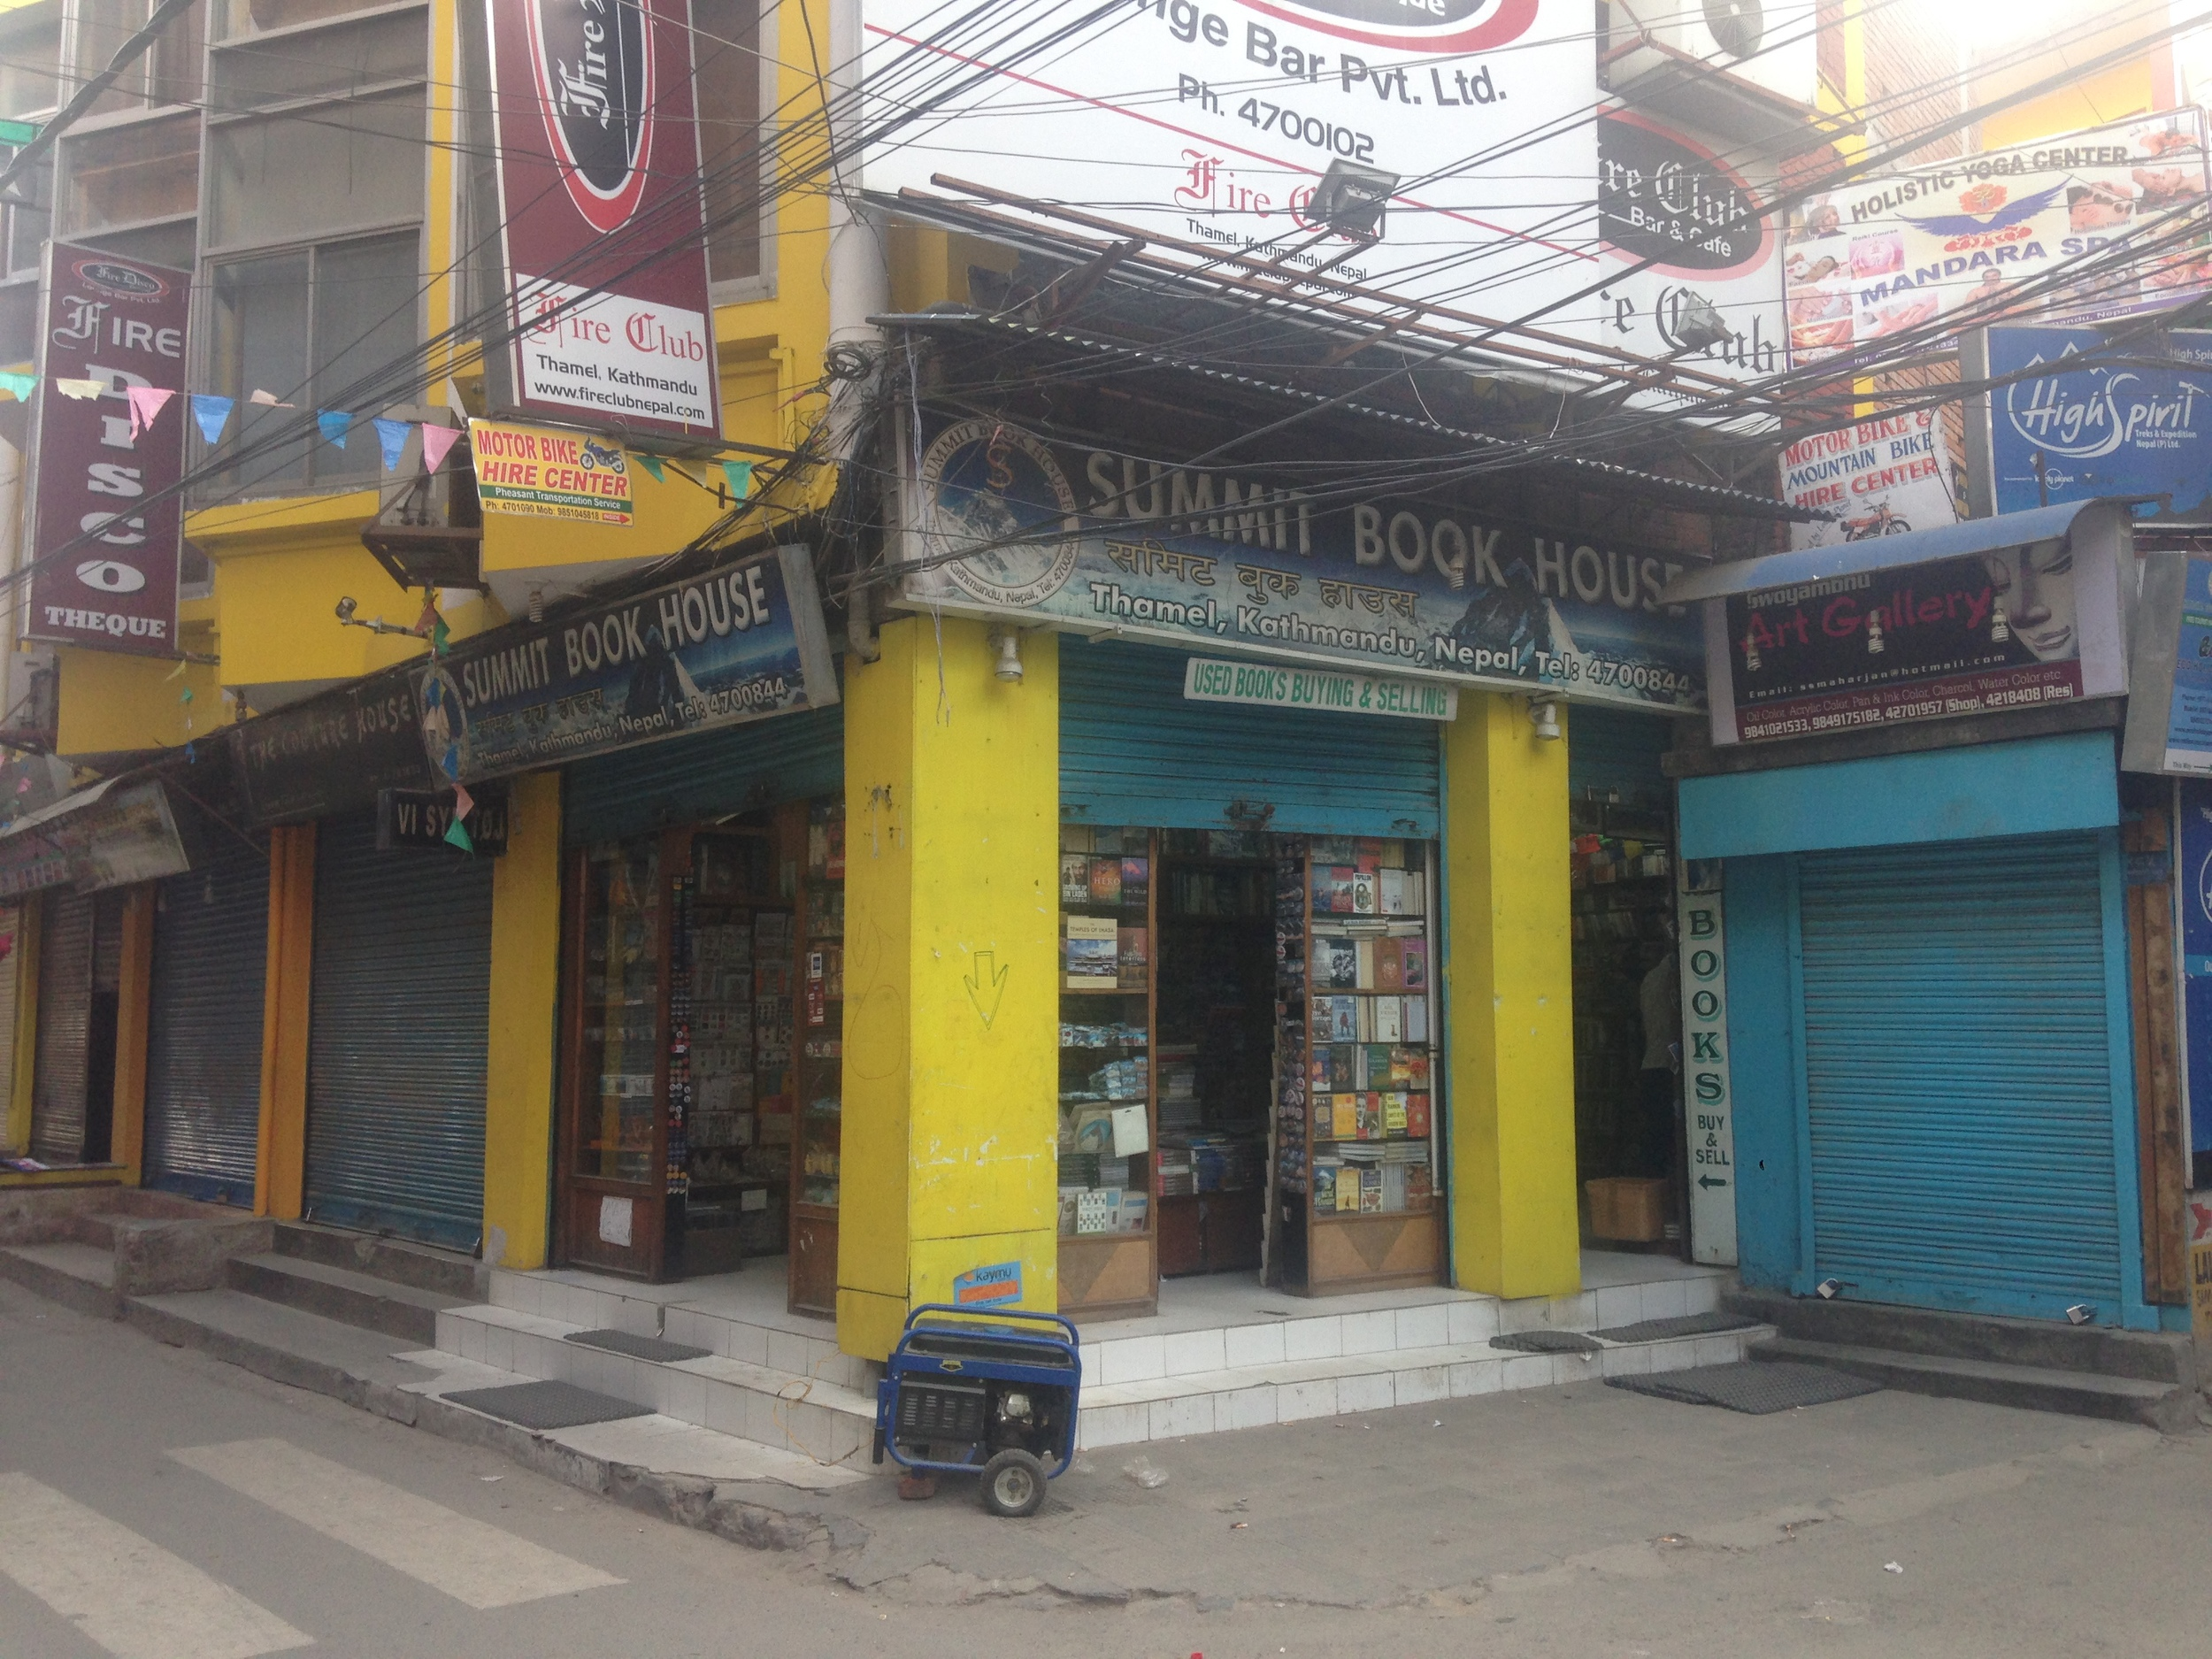 This bookstore was open every day following the quake running their own generator.